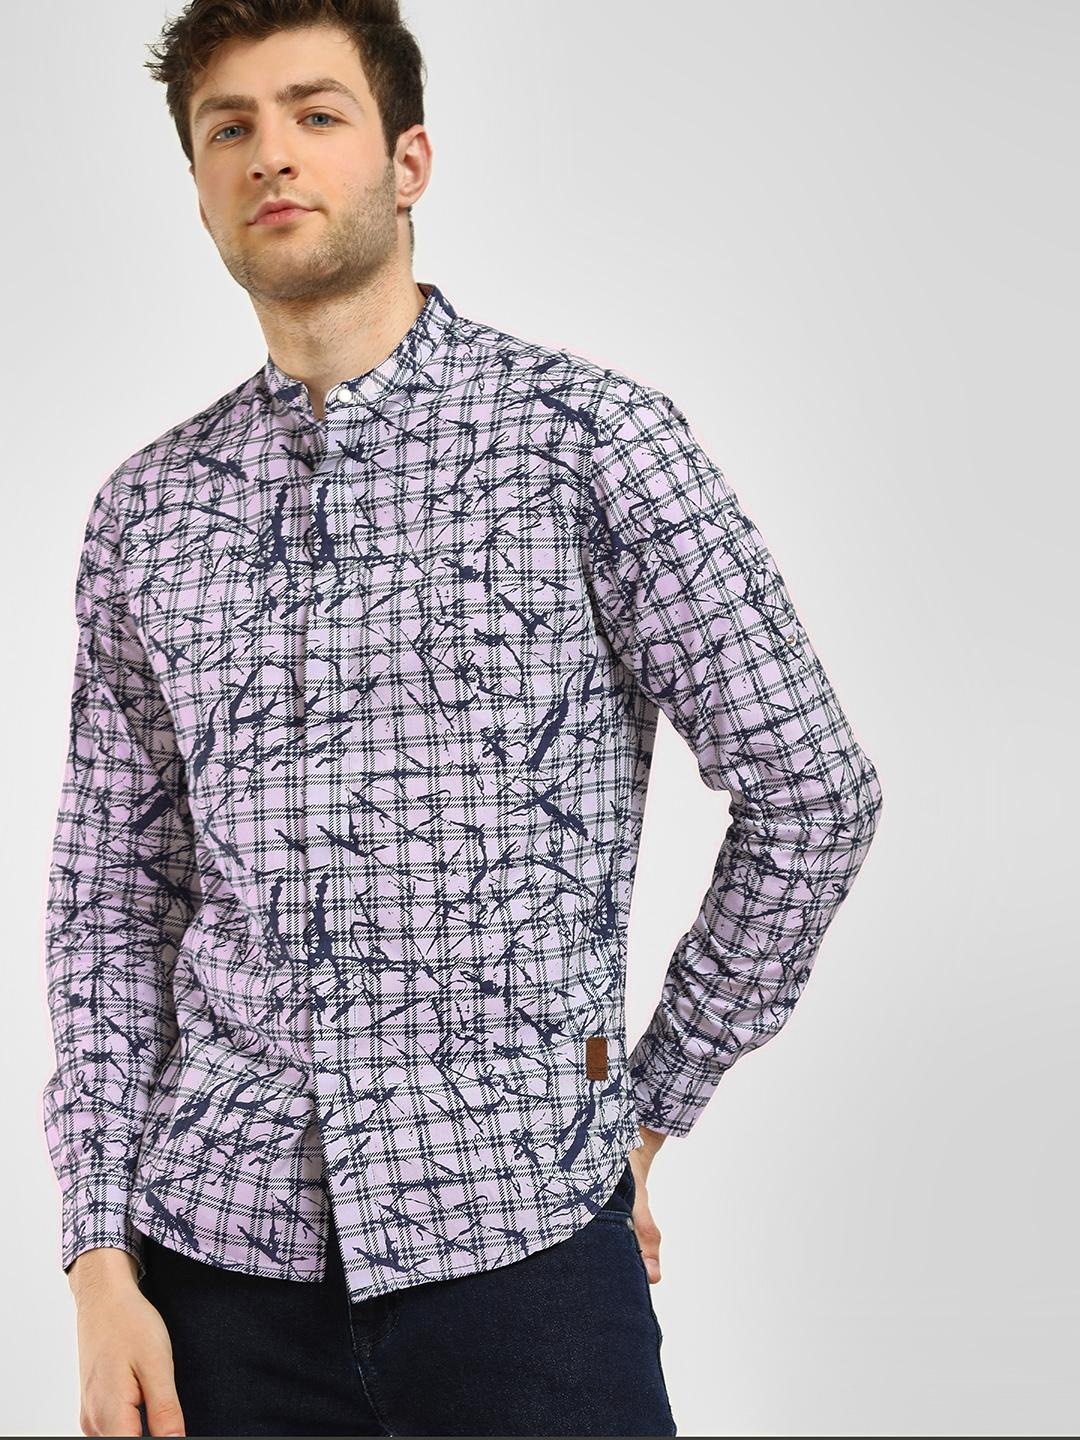 Blue Saint Black/White Checkered Splatter Print Shirt 1